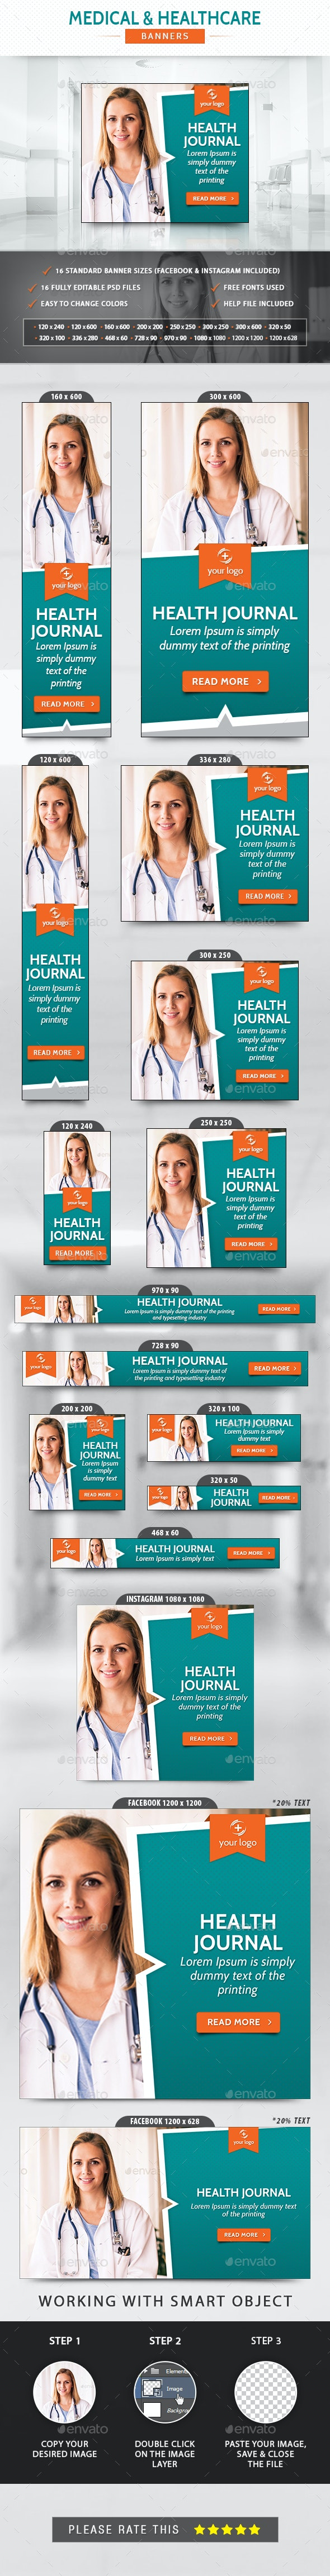 Medical & Healthcare Banners - Banners & Ads Web Elements